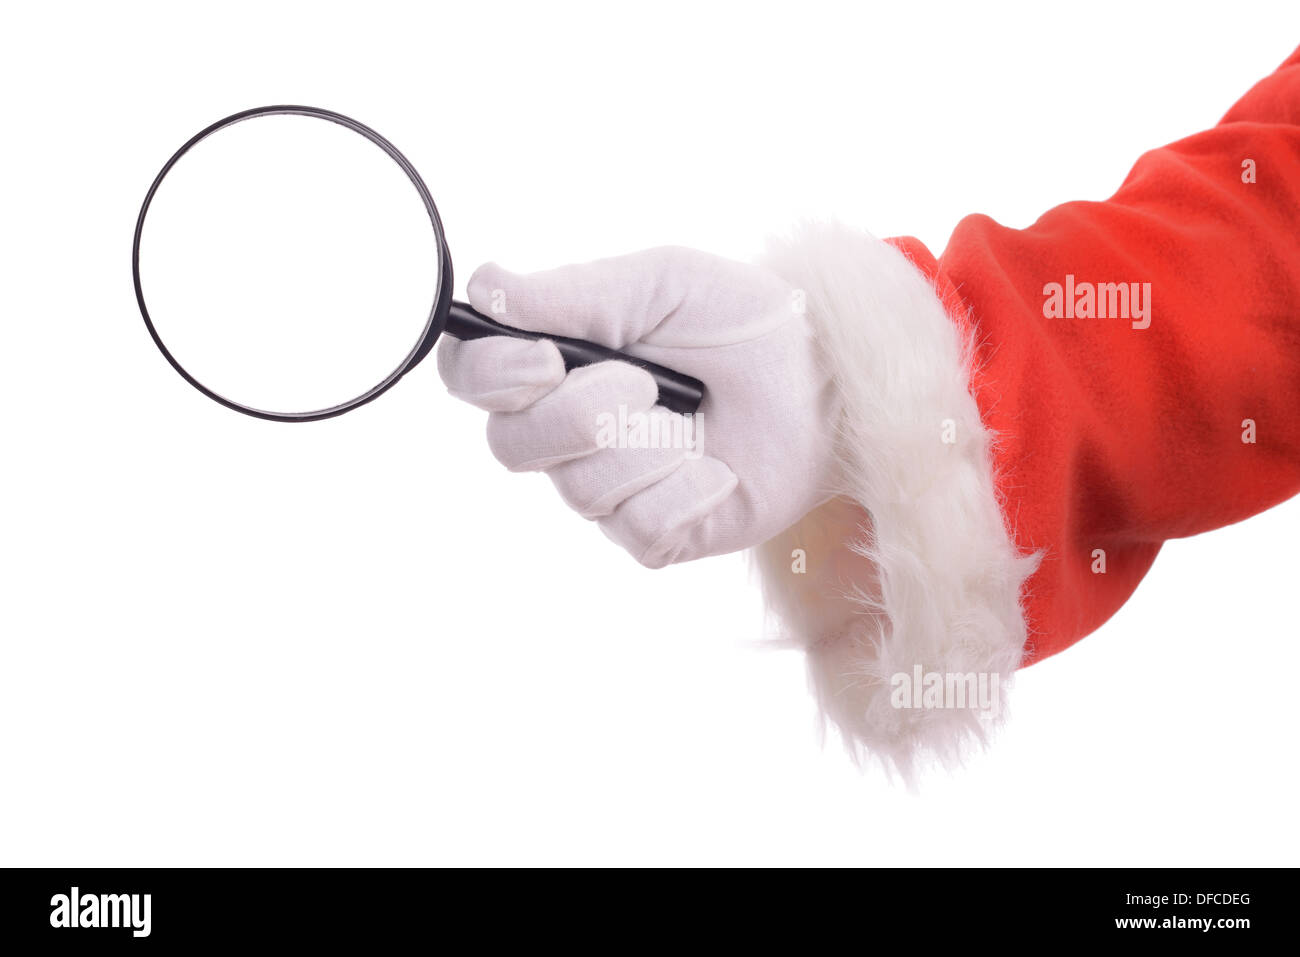 Searching for christmas he perfect gift or bargain, santa's hand holding a magnifying glass isolated on a white background - Stock Image